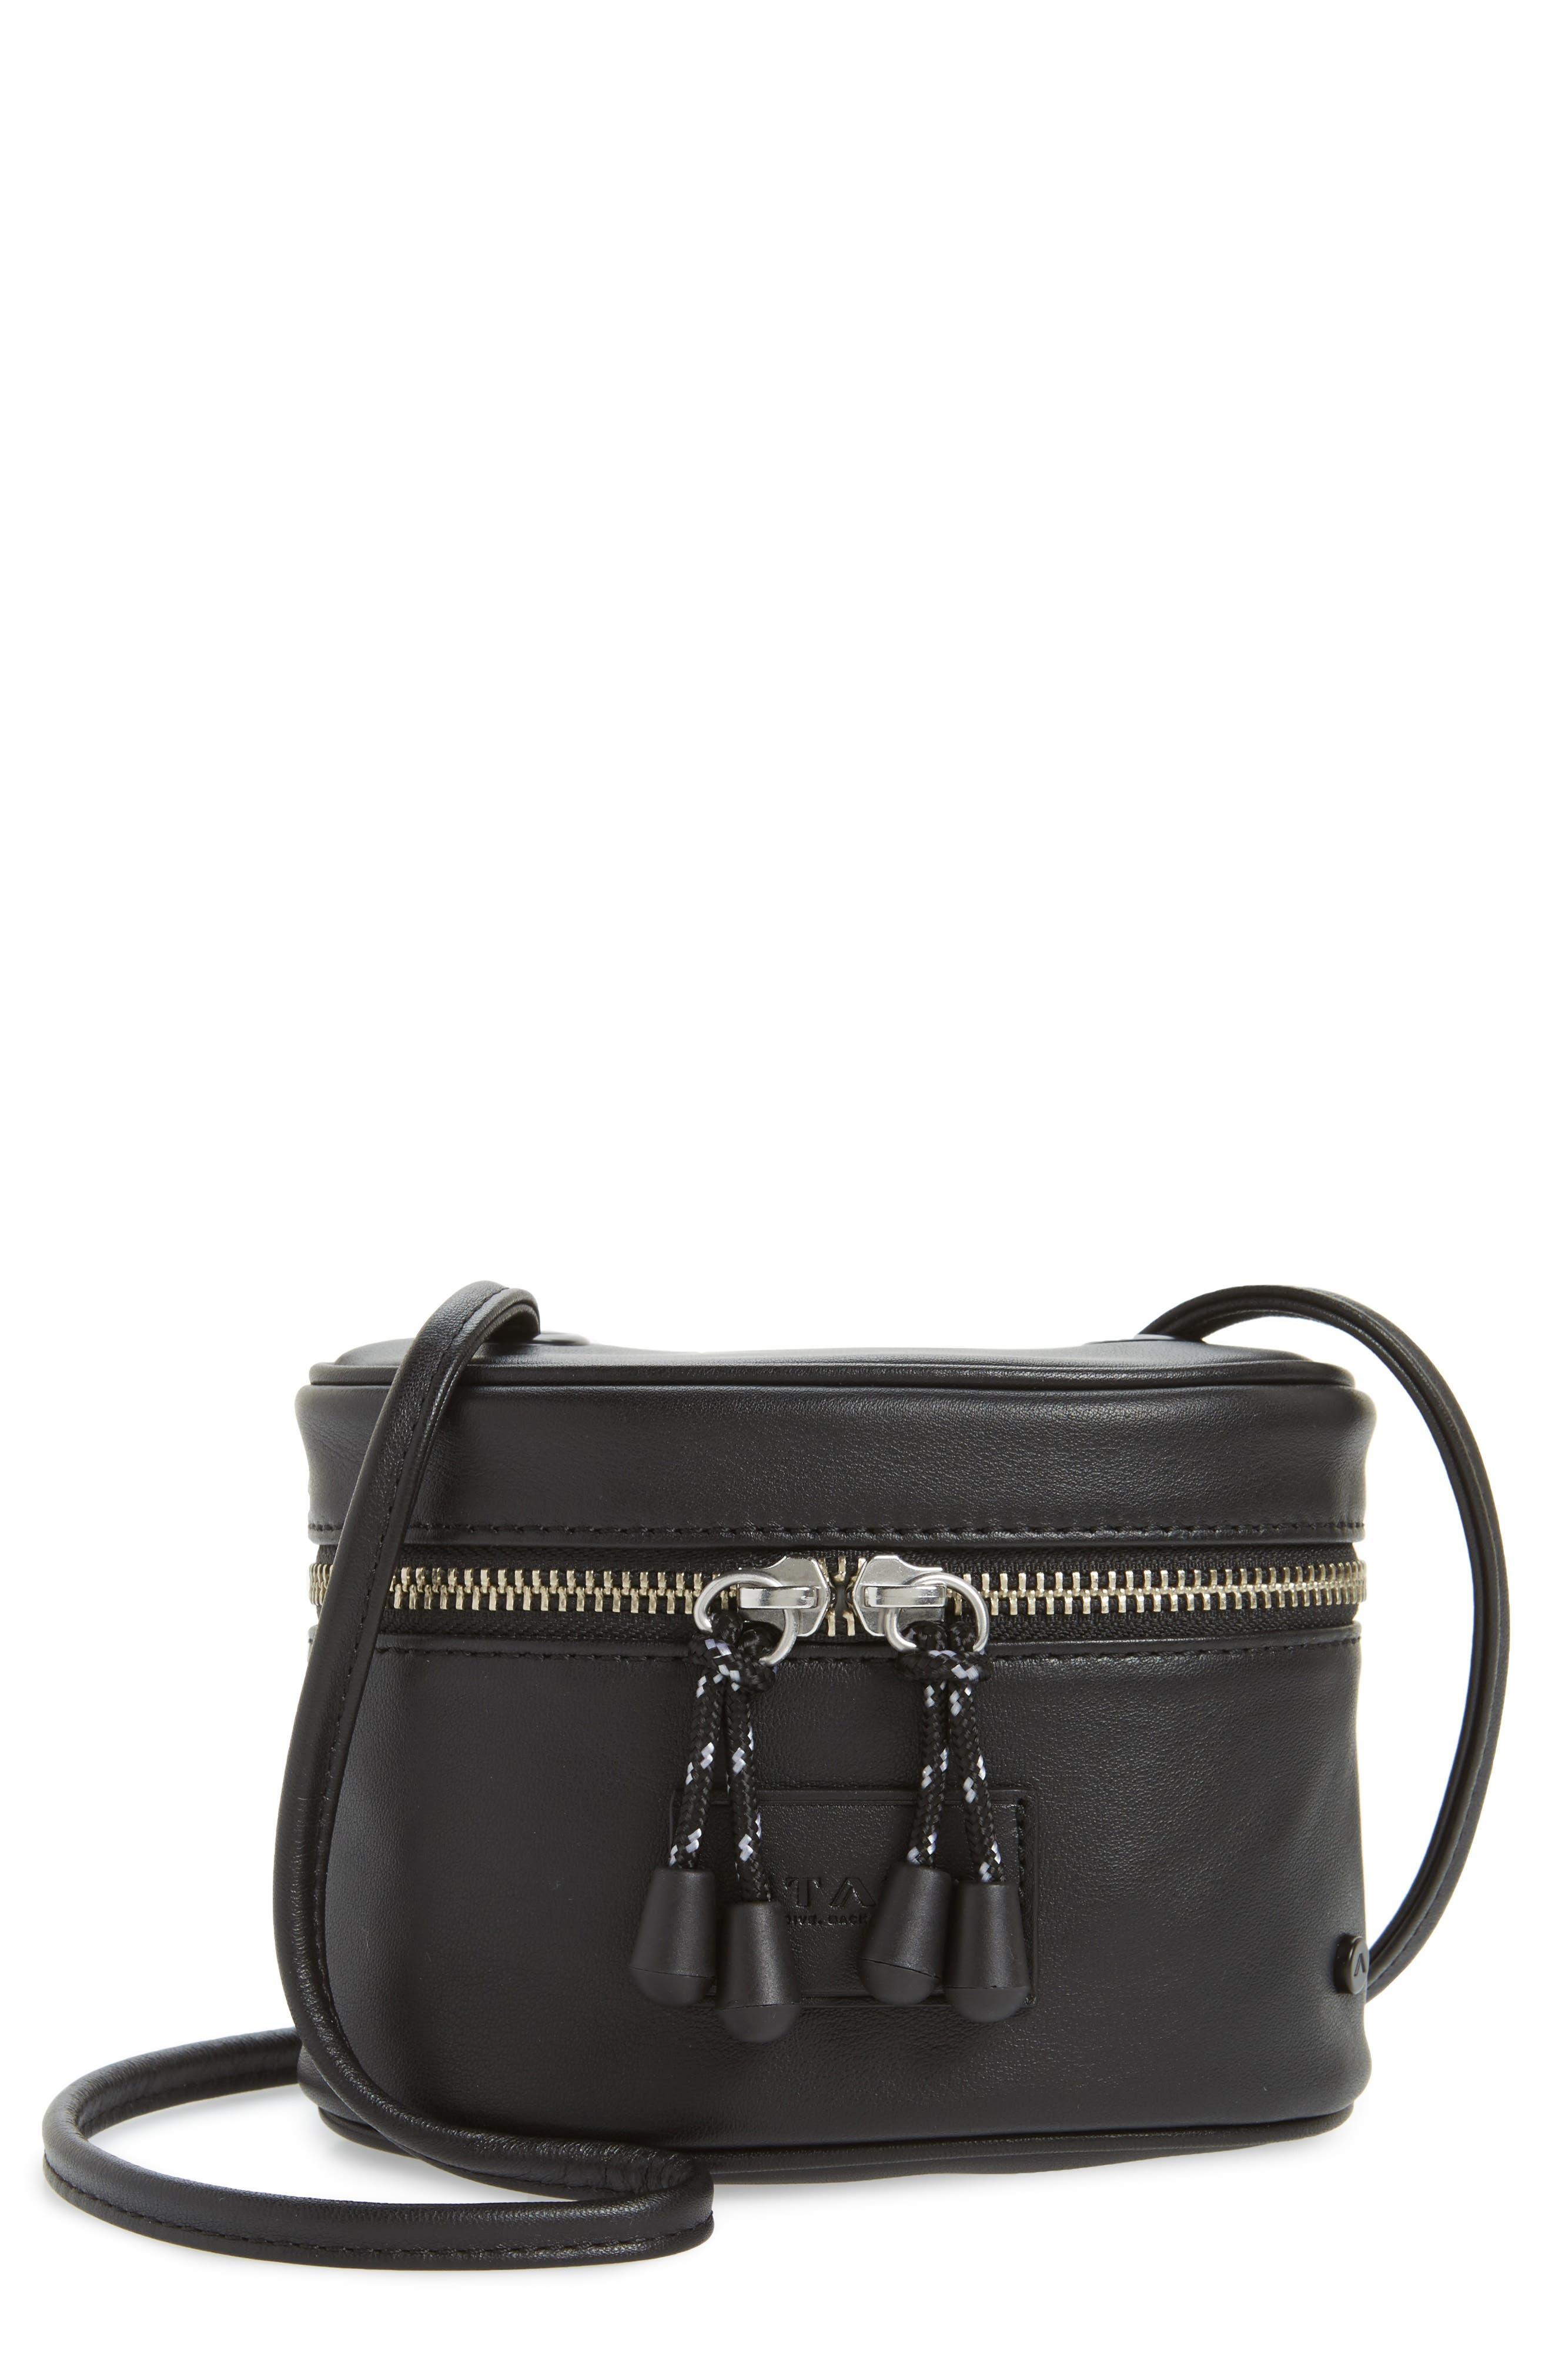 Greenwood Autumn Leather Crossbody Bag,                         Main,                         color, 001